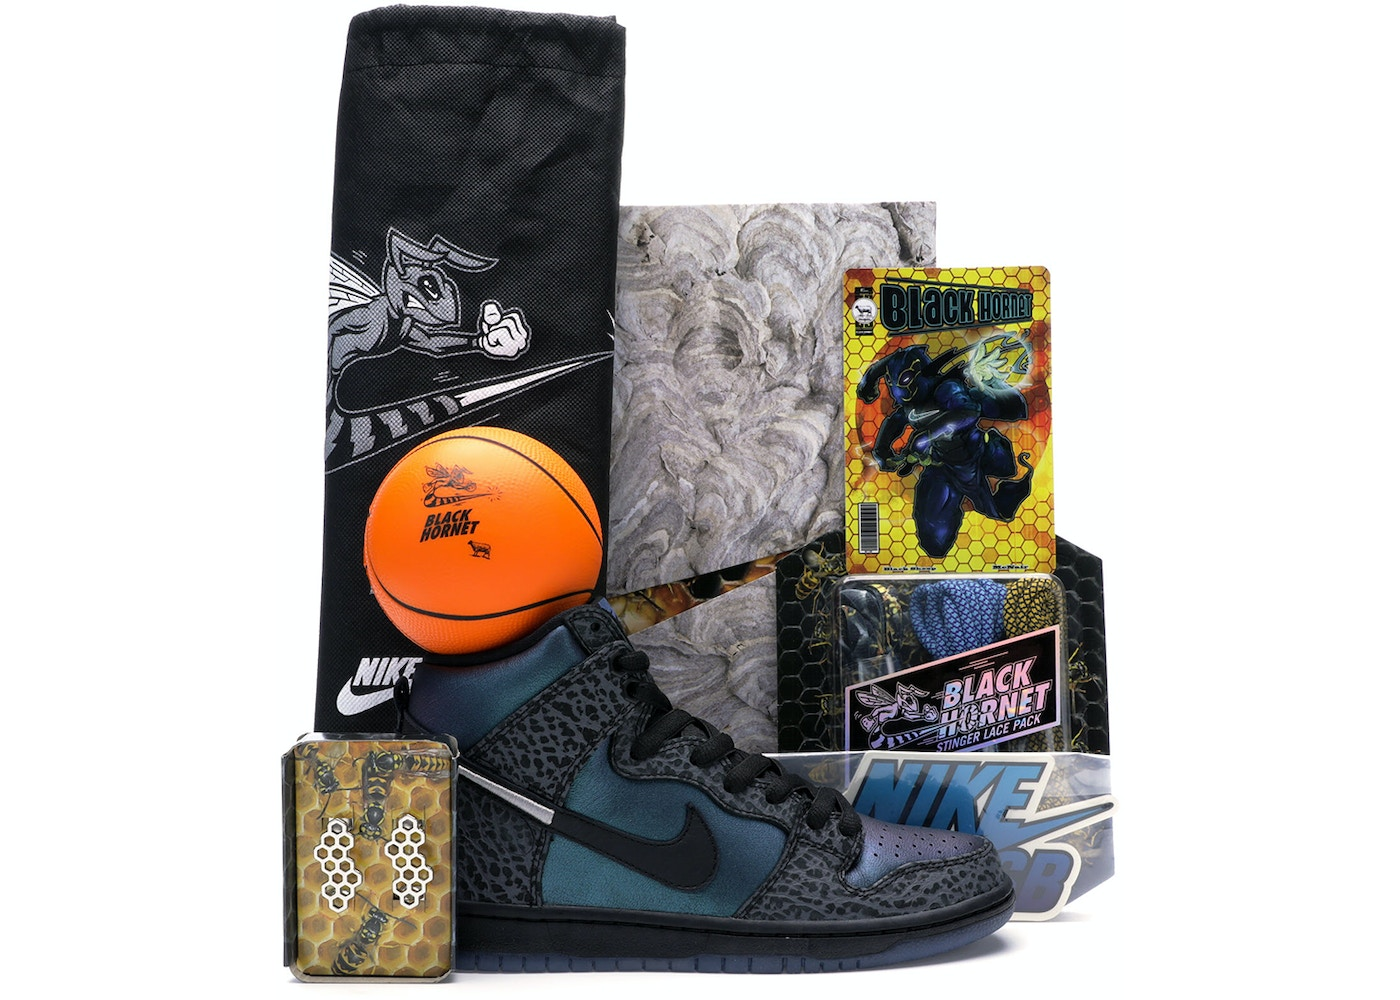 Nike SB Dunk High Black Sheep Hornet (Special Packaging) - BQ6827 001 21cab4aad